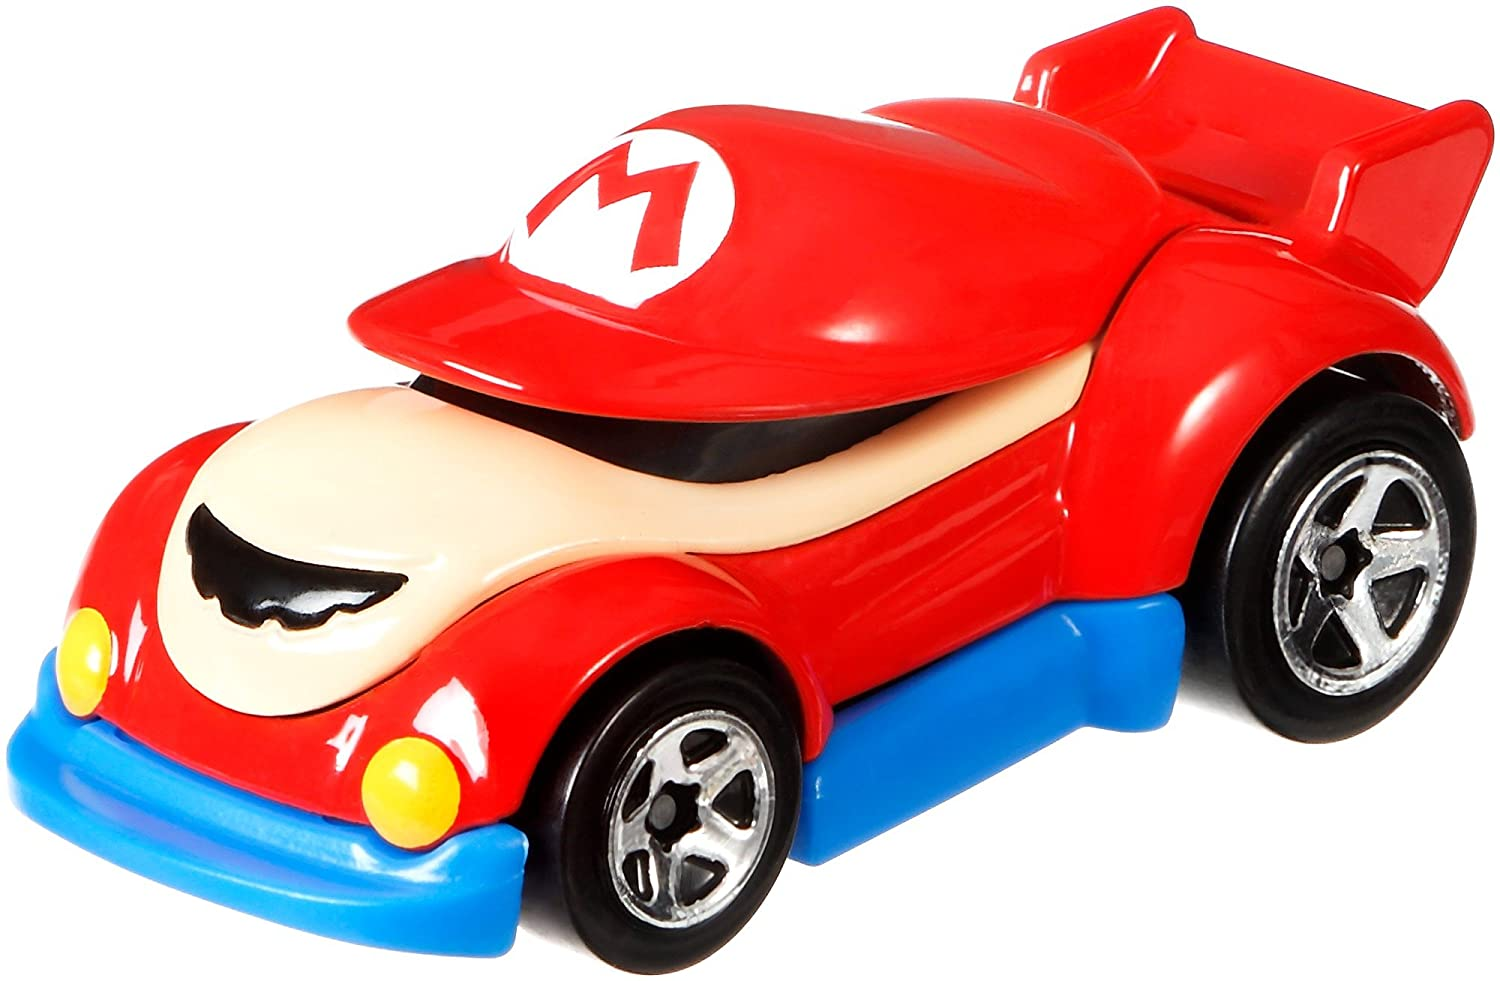 Hot Wheels Mario Car Mattel FLJ17